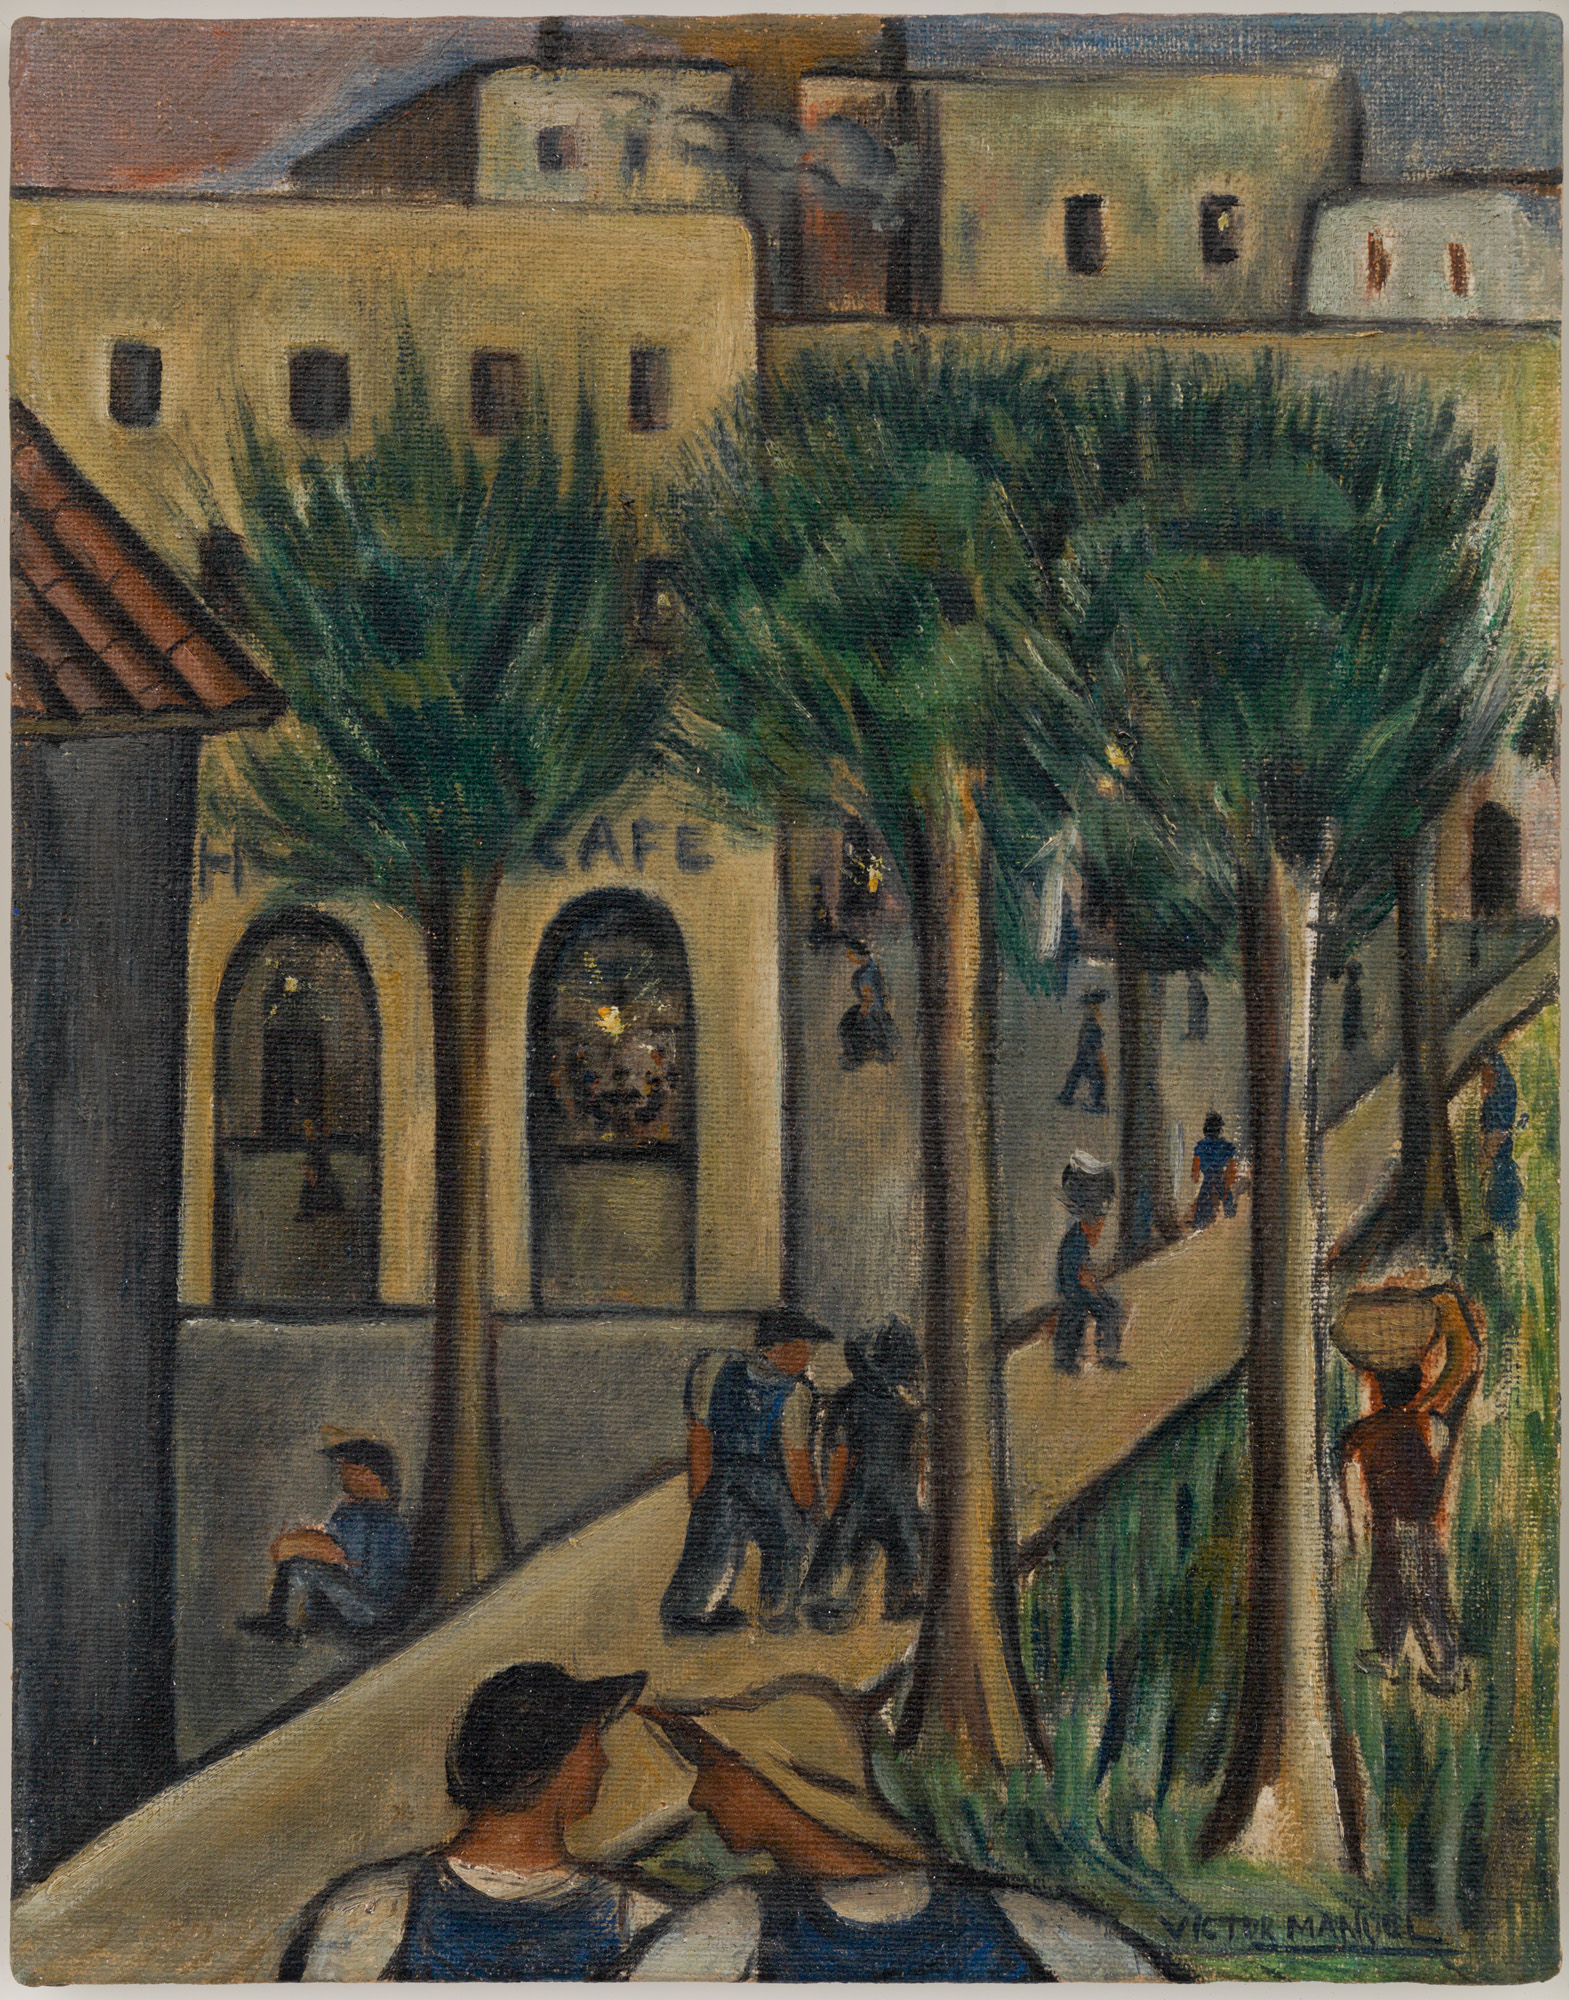 Camino al Café (The Way to the Coffee Shop), ca. 1930. Oil on canvas. Frame: 26 1/2 x 23 1/2 x 2 in.